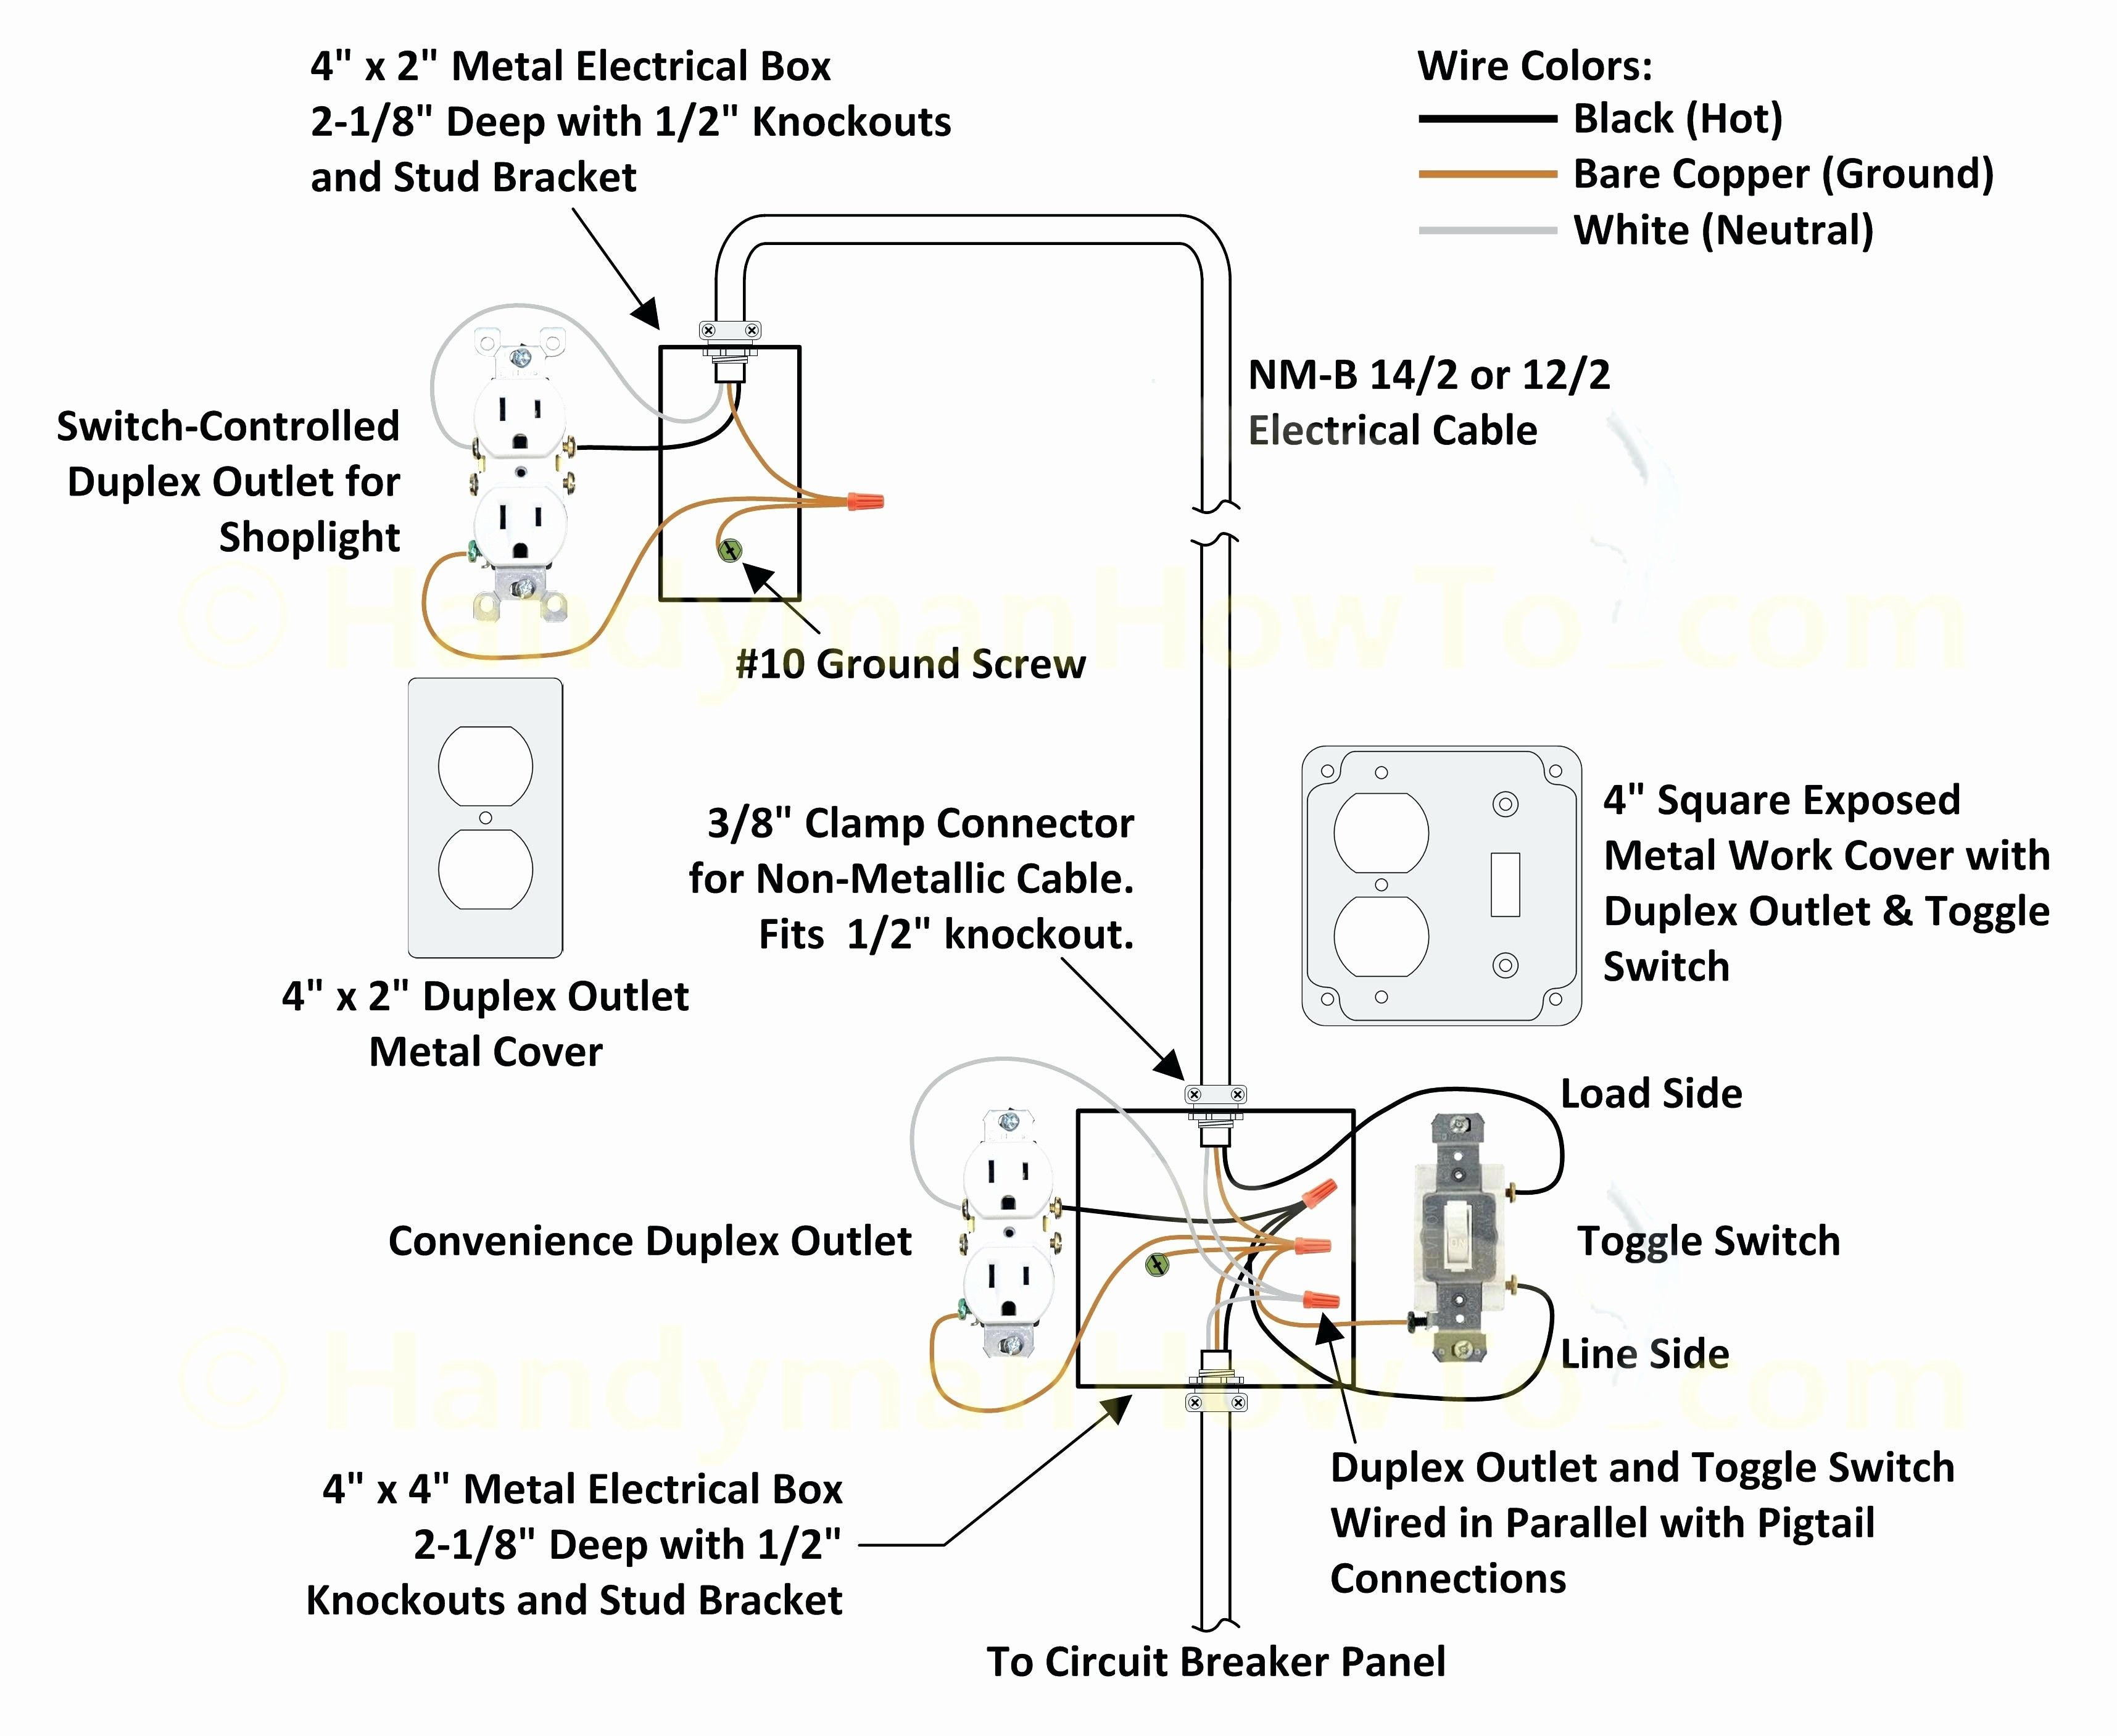 New Wiring Gfci to Switch Diagram #diagram #diagramsample #diagramtemplate # wiringdiagram #diagramchart #w… | Metal electrical box, Three way switch,  Ceiling lights | X 10 3 Way Switch Wiring Diagram |  | Pinterest